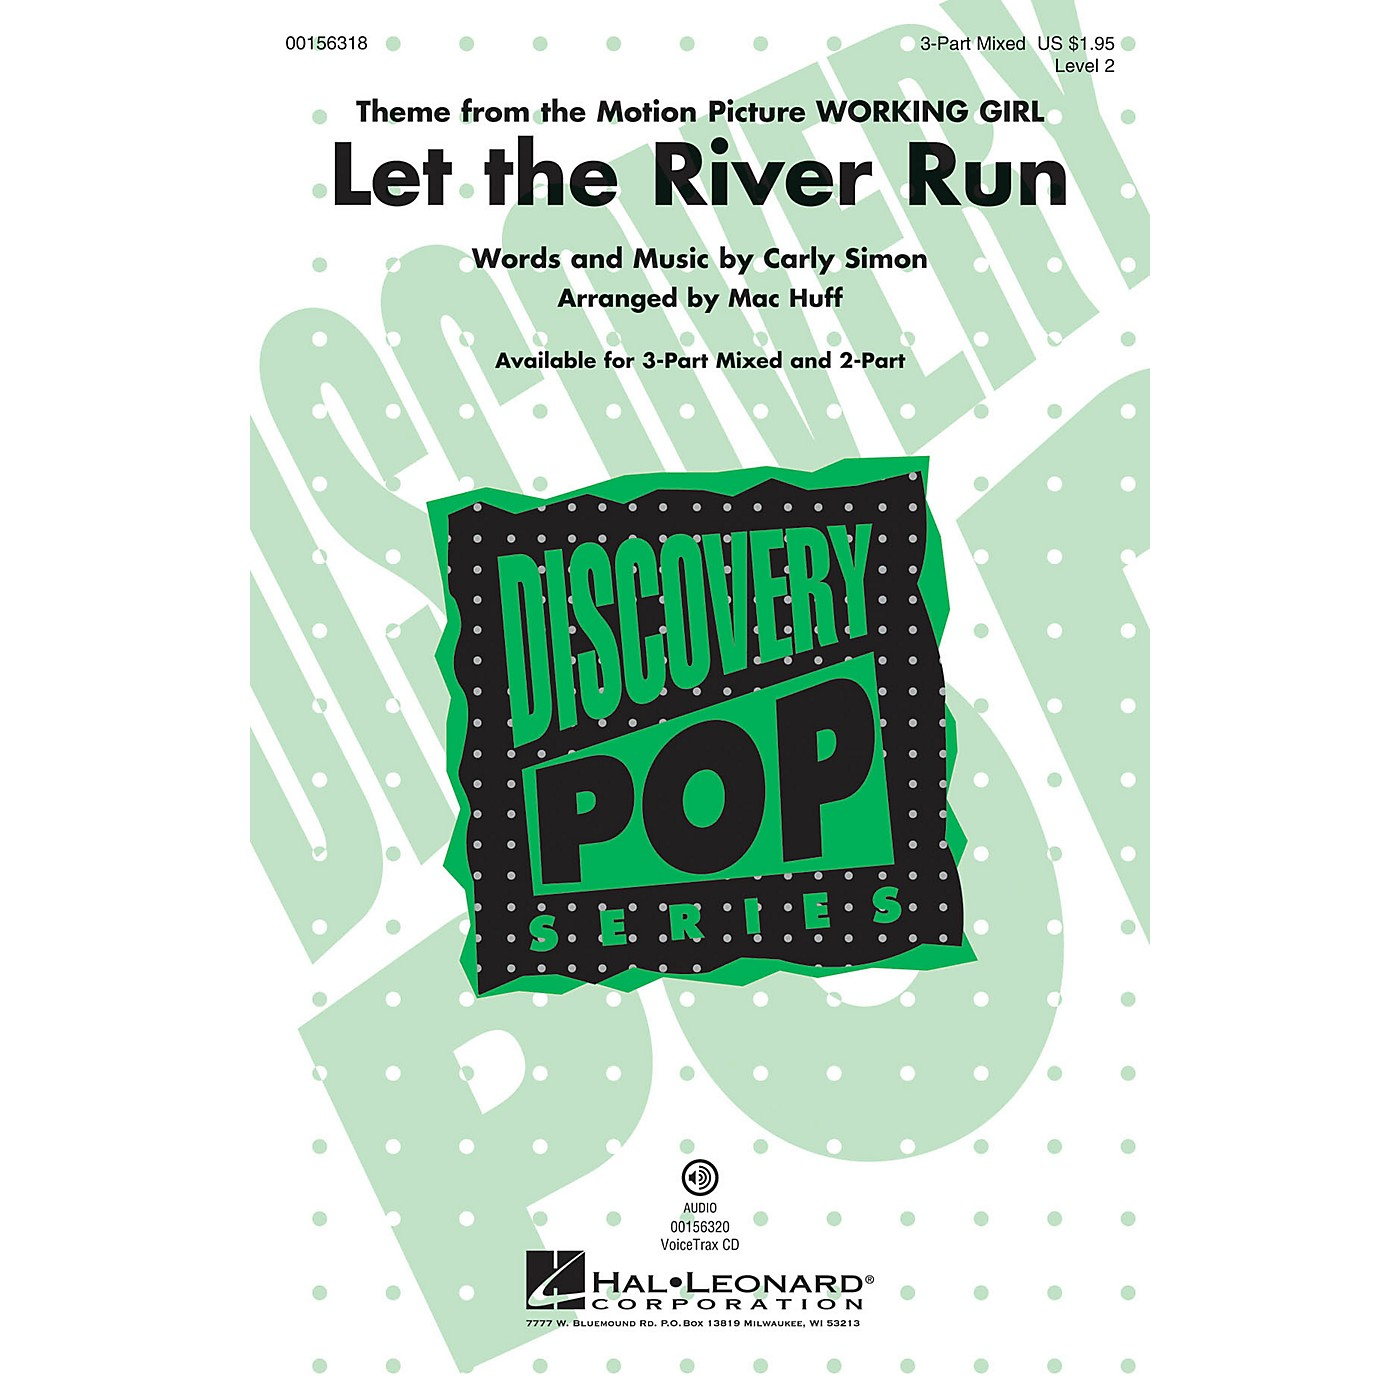 Hal Leonard Let the River Run (Discovery Level 2) 3-Part Mixed arranged by Mac Huff thumbnail